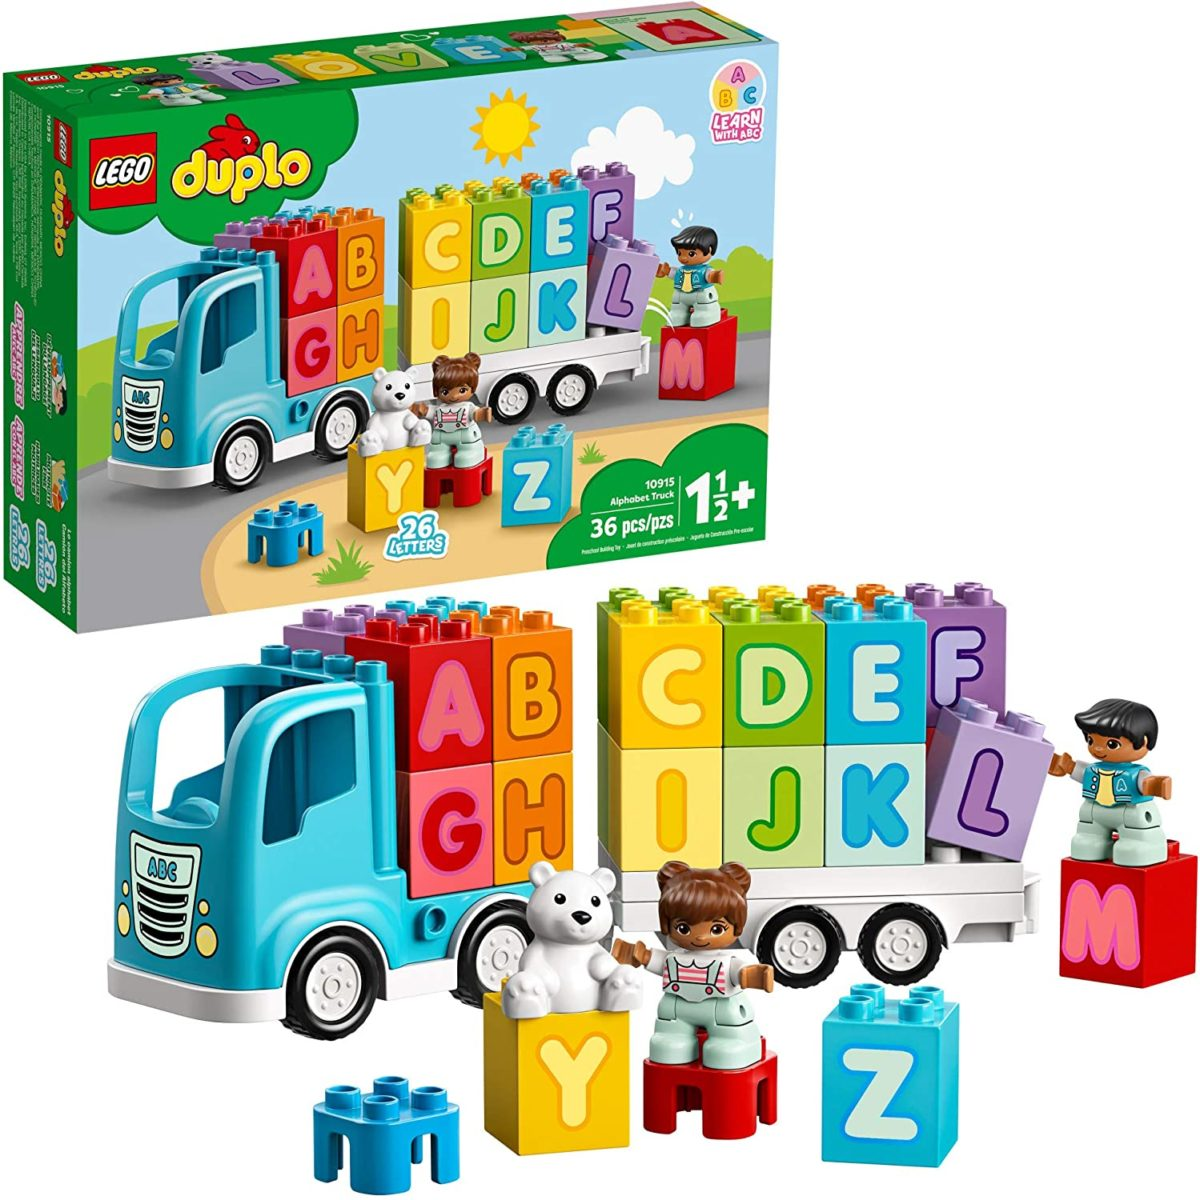 toys for toddlers: here are 35 gifts for every toddler in your life | parenting questions | mamas uncut 81rn02k0ycl. ac sl1500